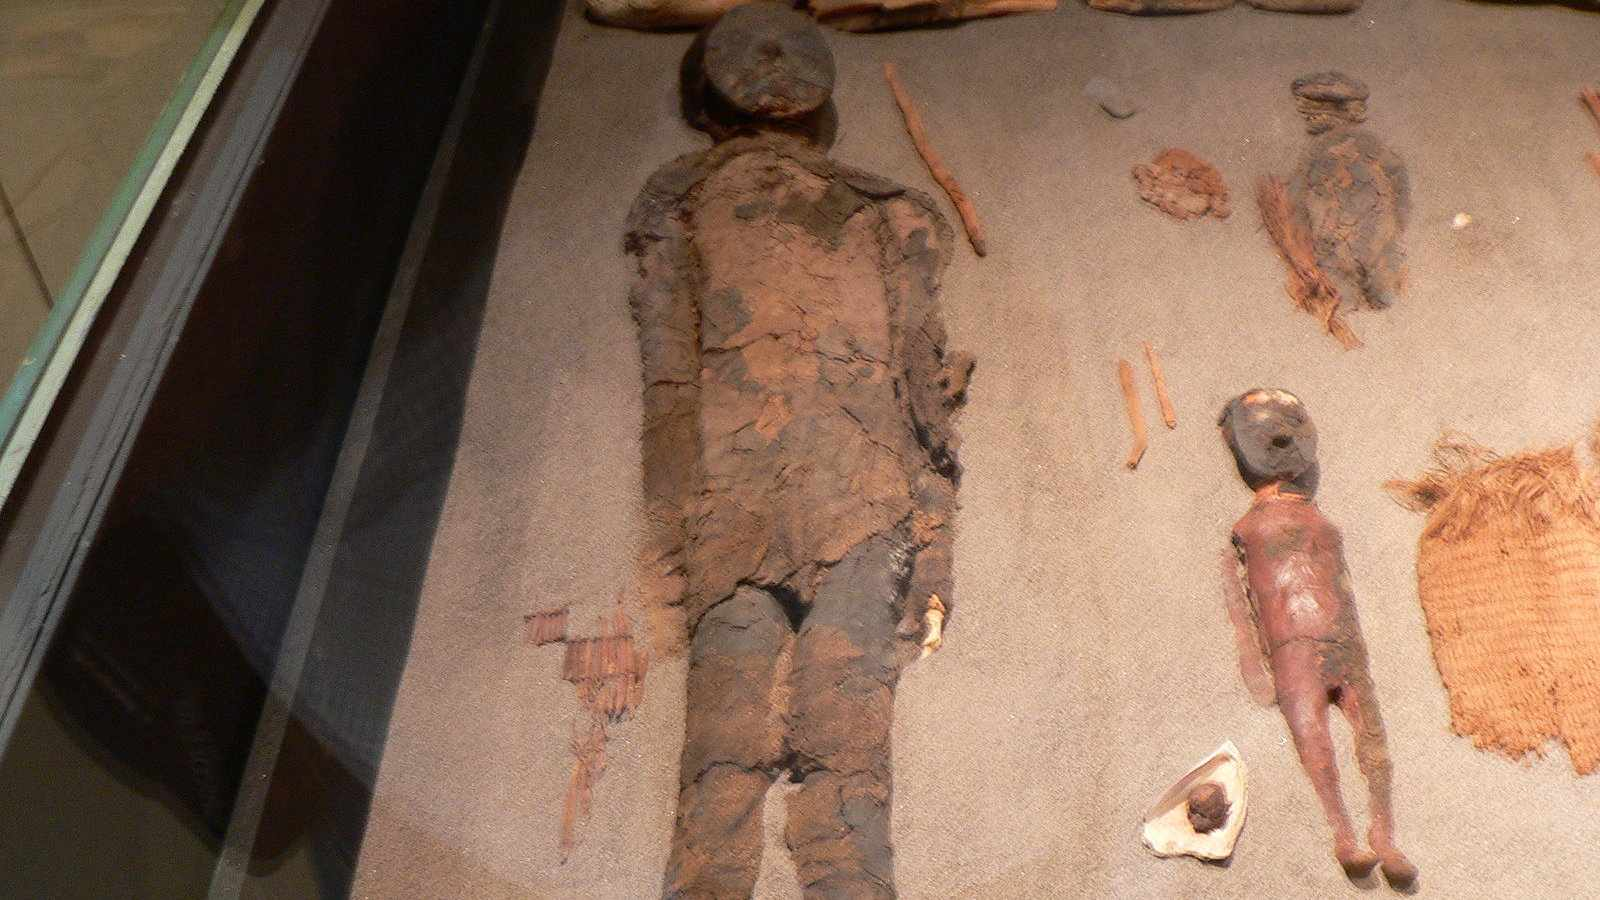 Chile is home to the oldest discovered mummies, even older than the Egyptian ones!